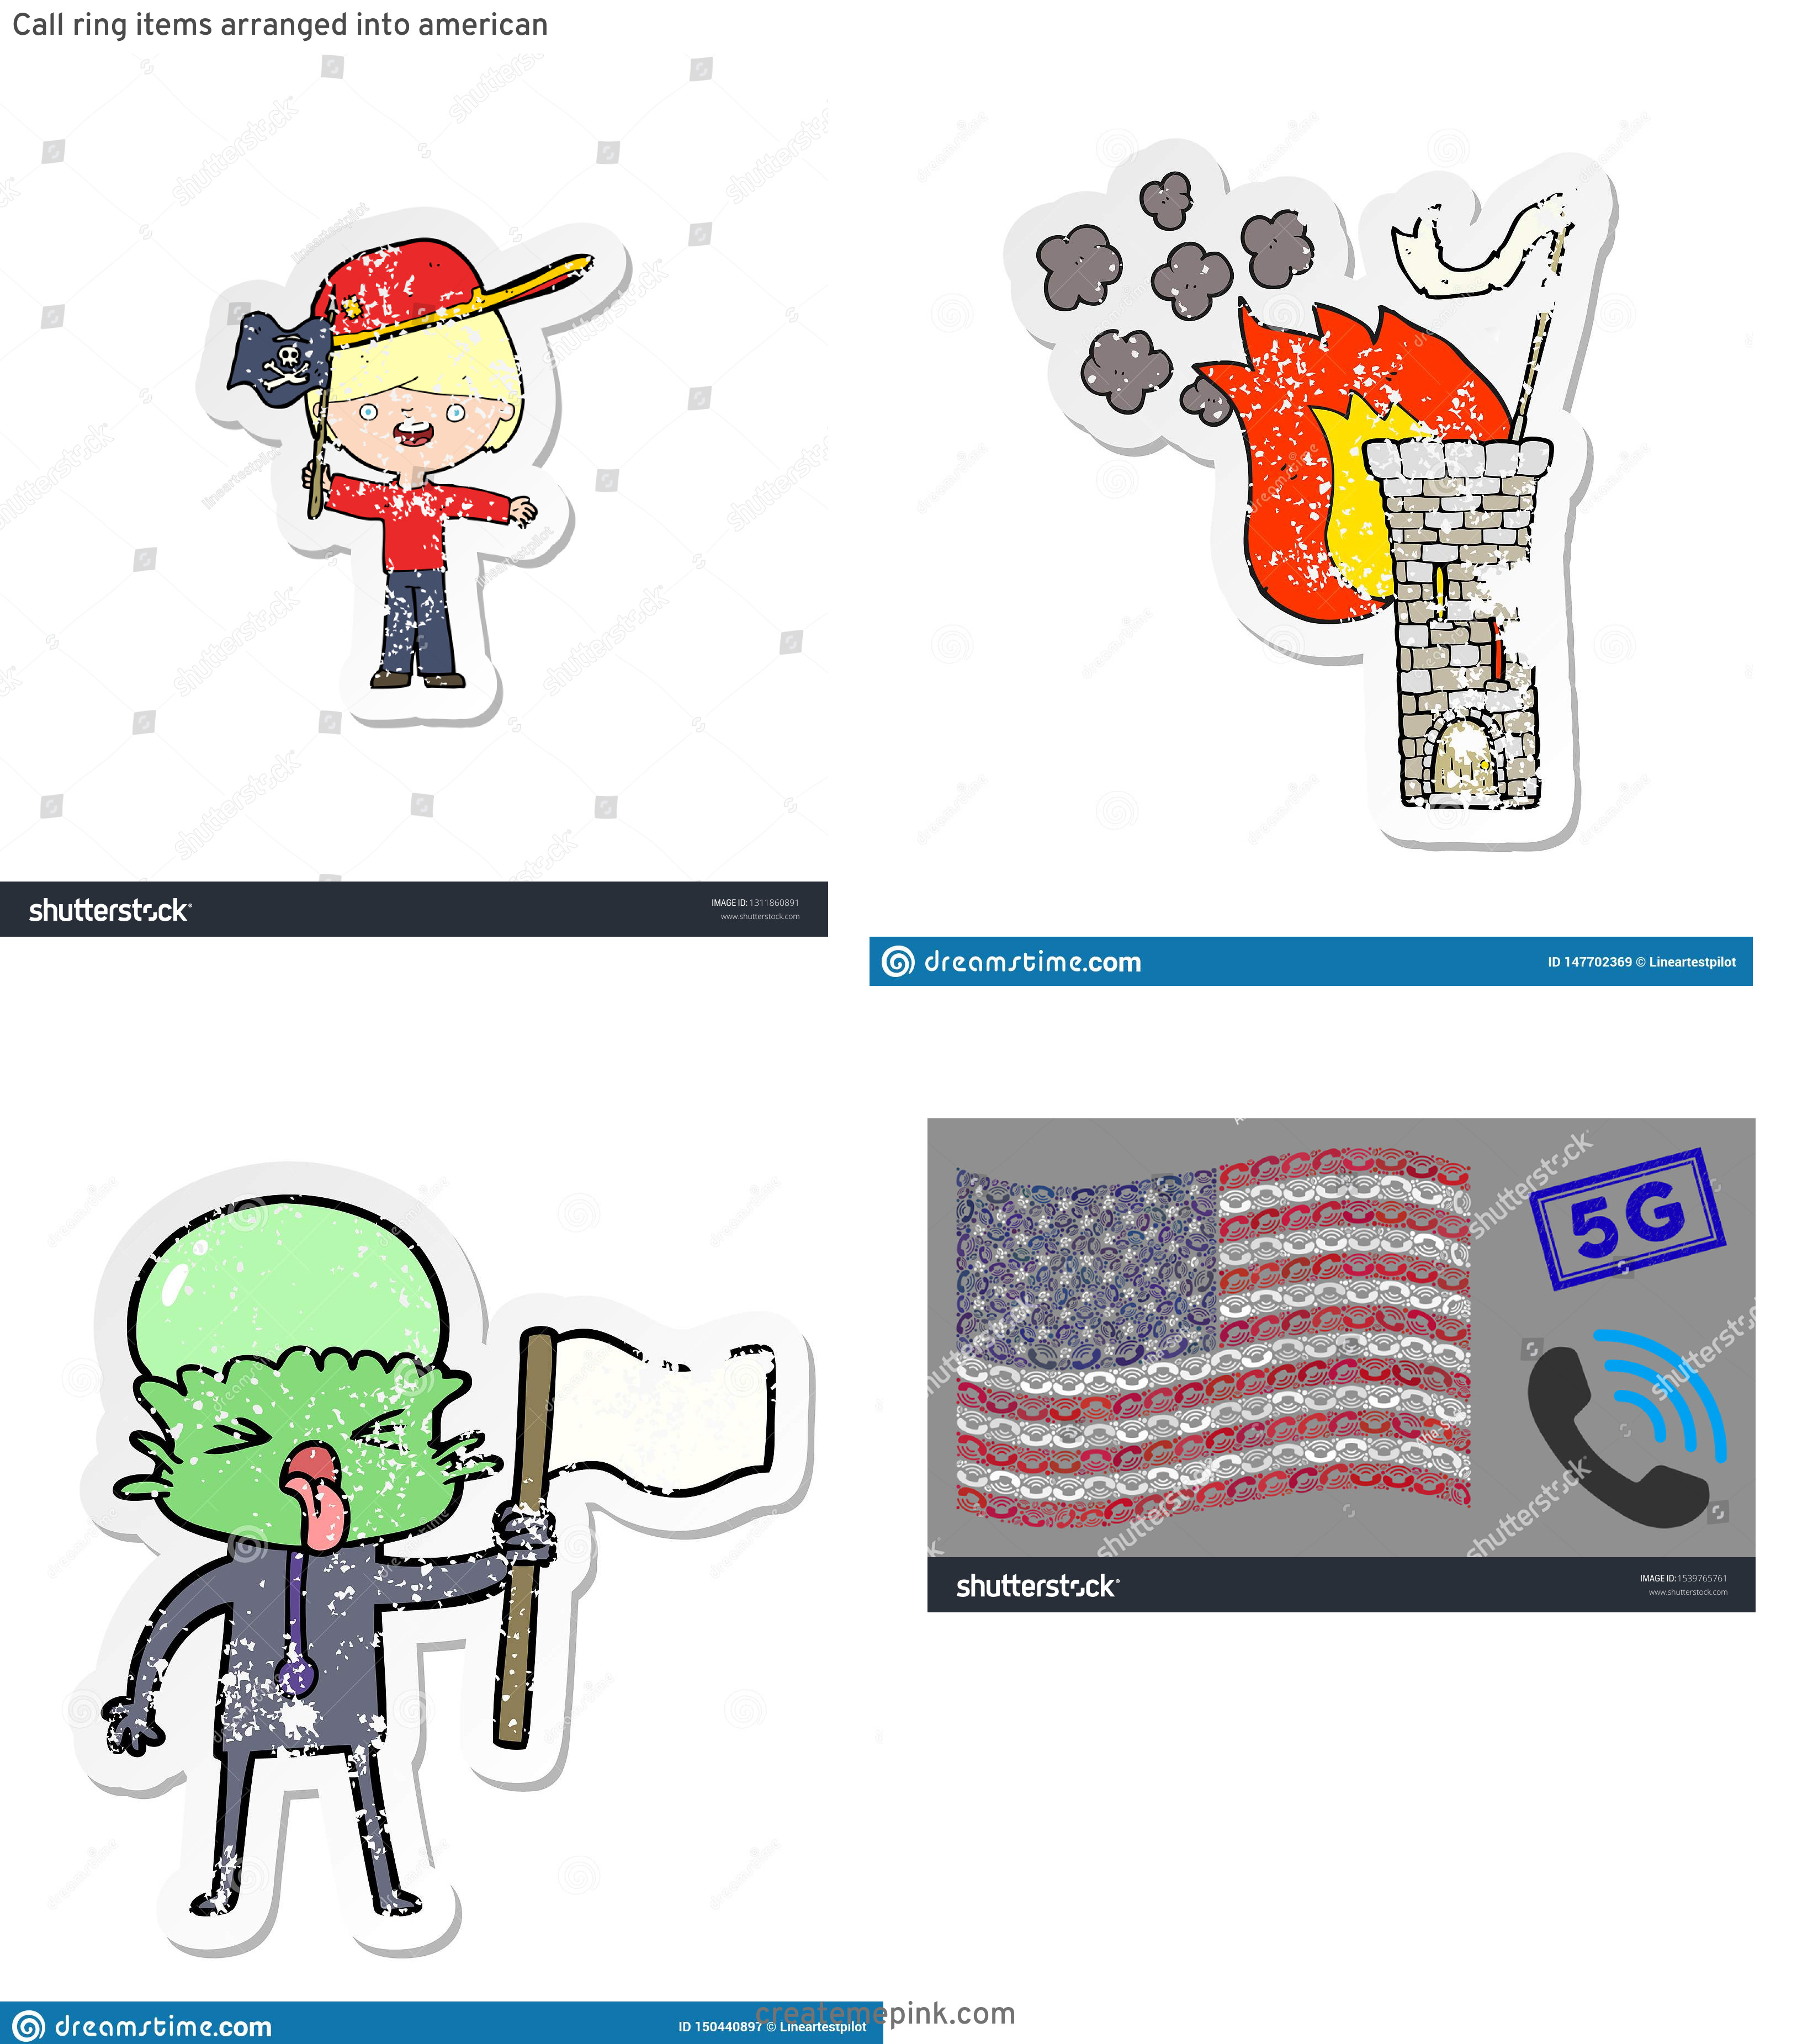 Waving Distressed Flag Vector: Call Ring Items Arranged Into American